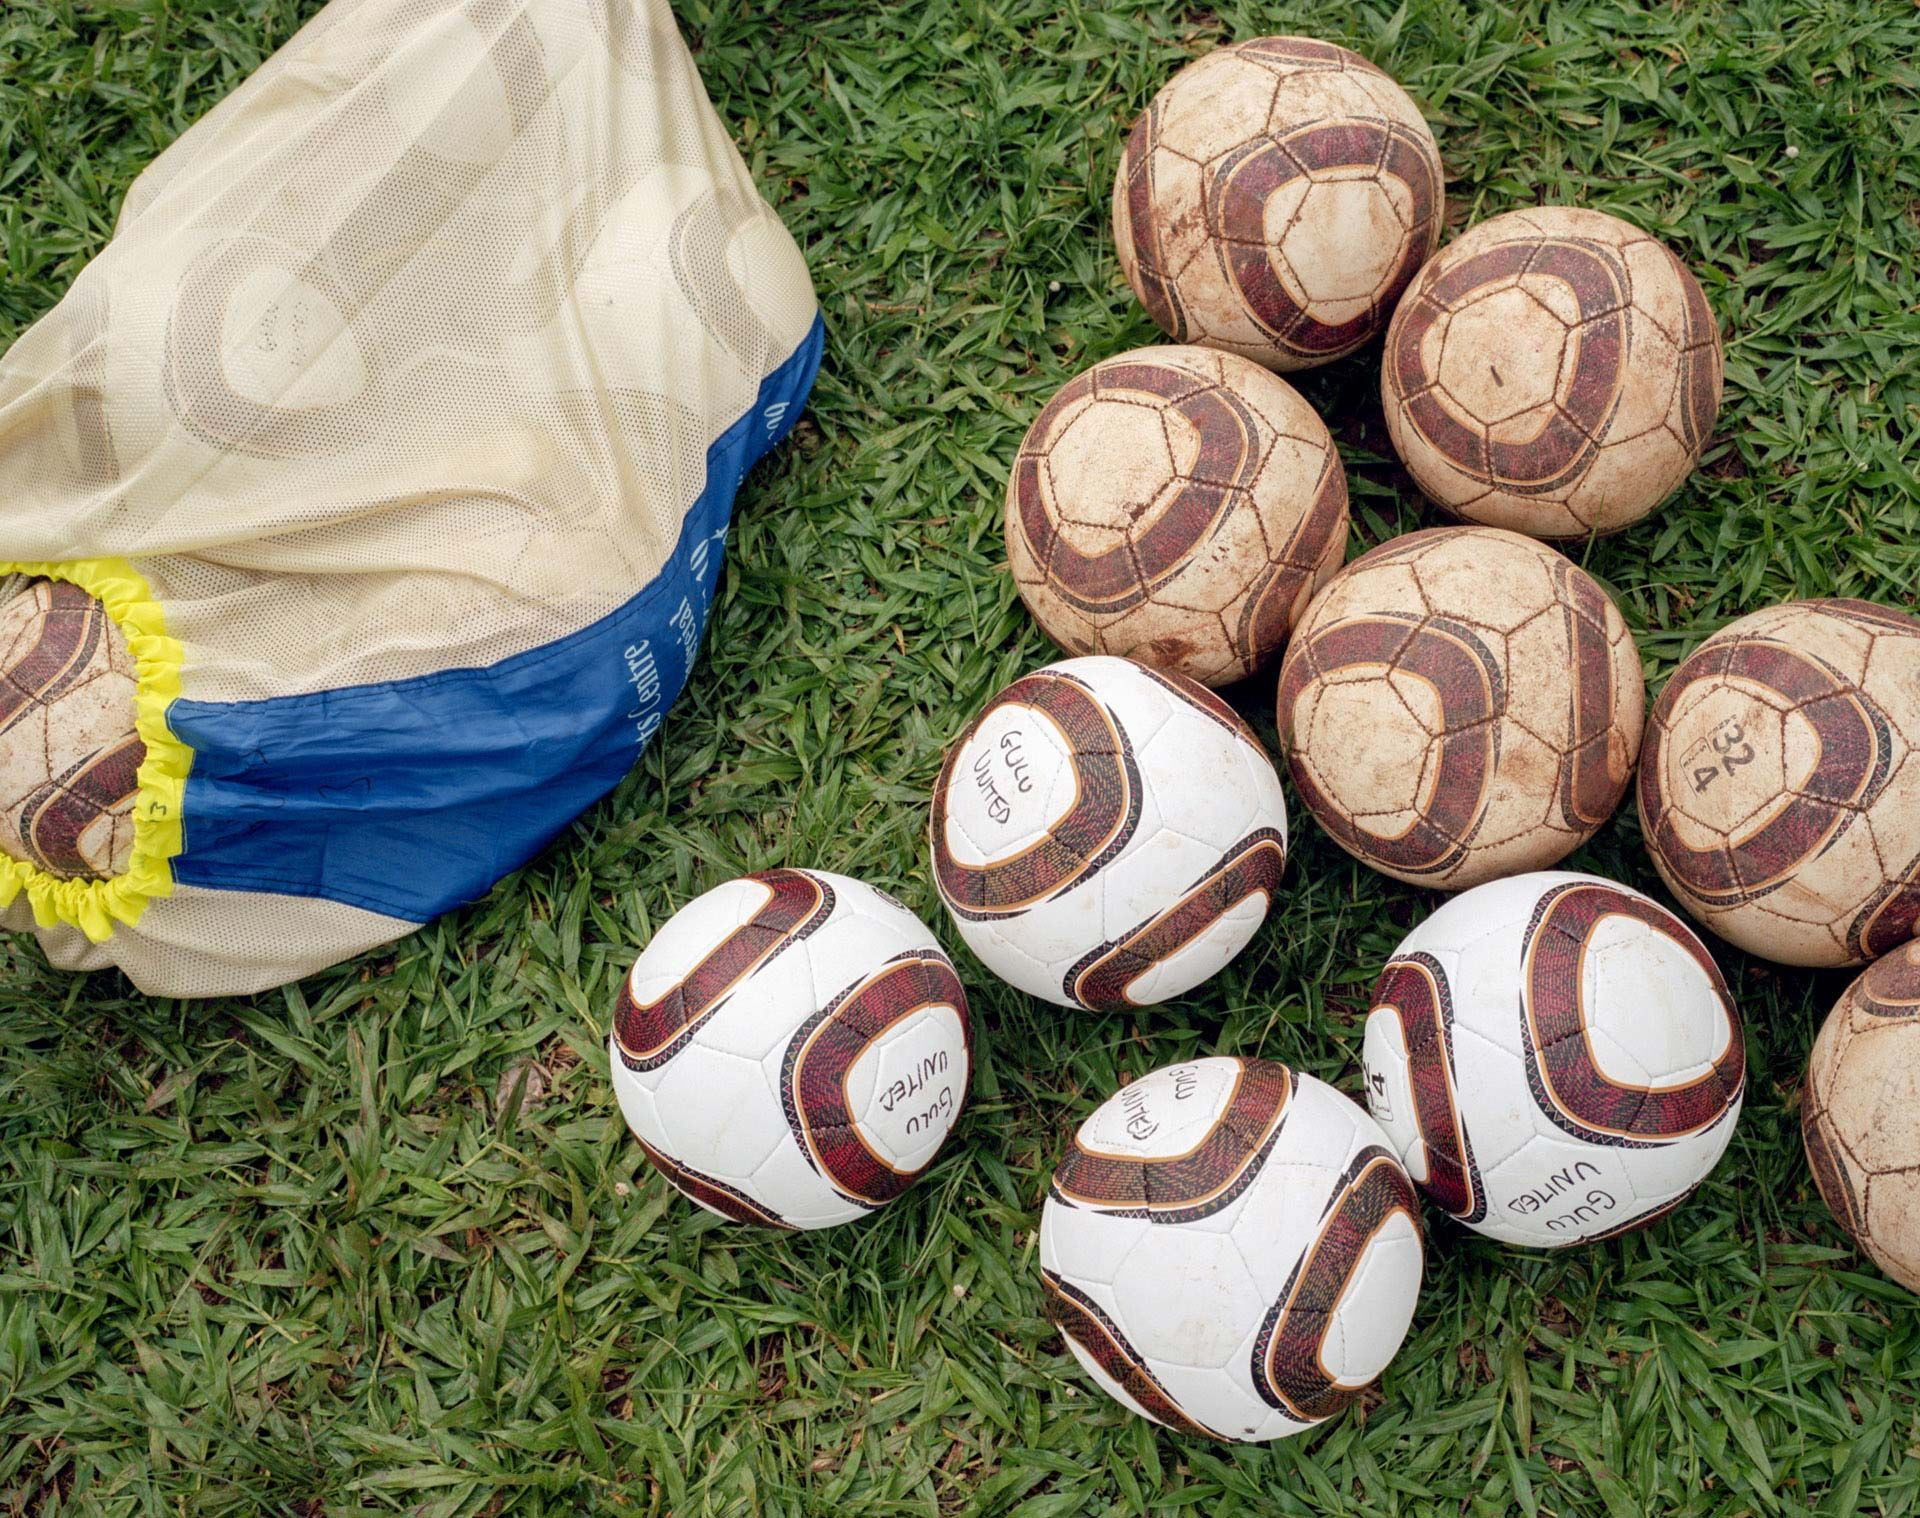 picture of tattered and new soccer balls side by side on the ground by Alexi Hobbs in Uganda for Football for Good with Sportsnet